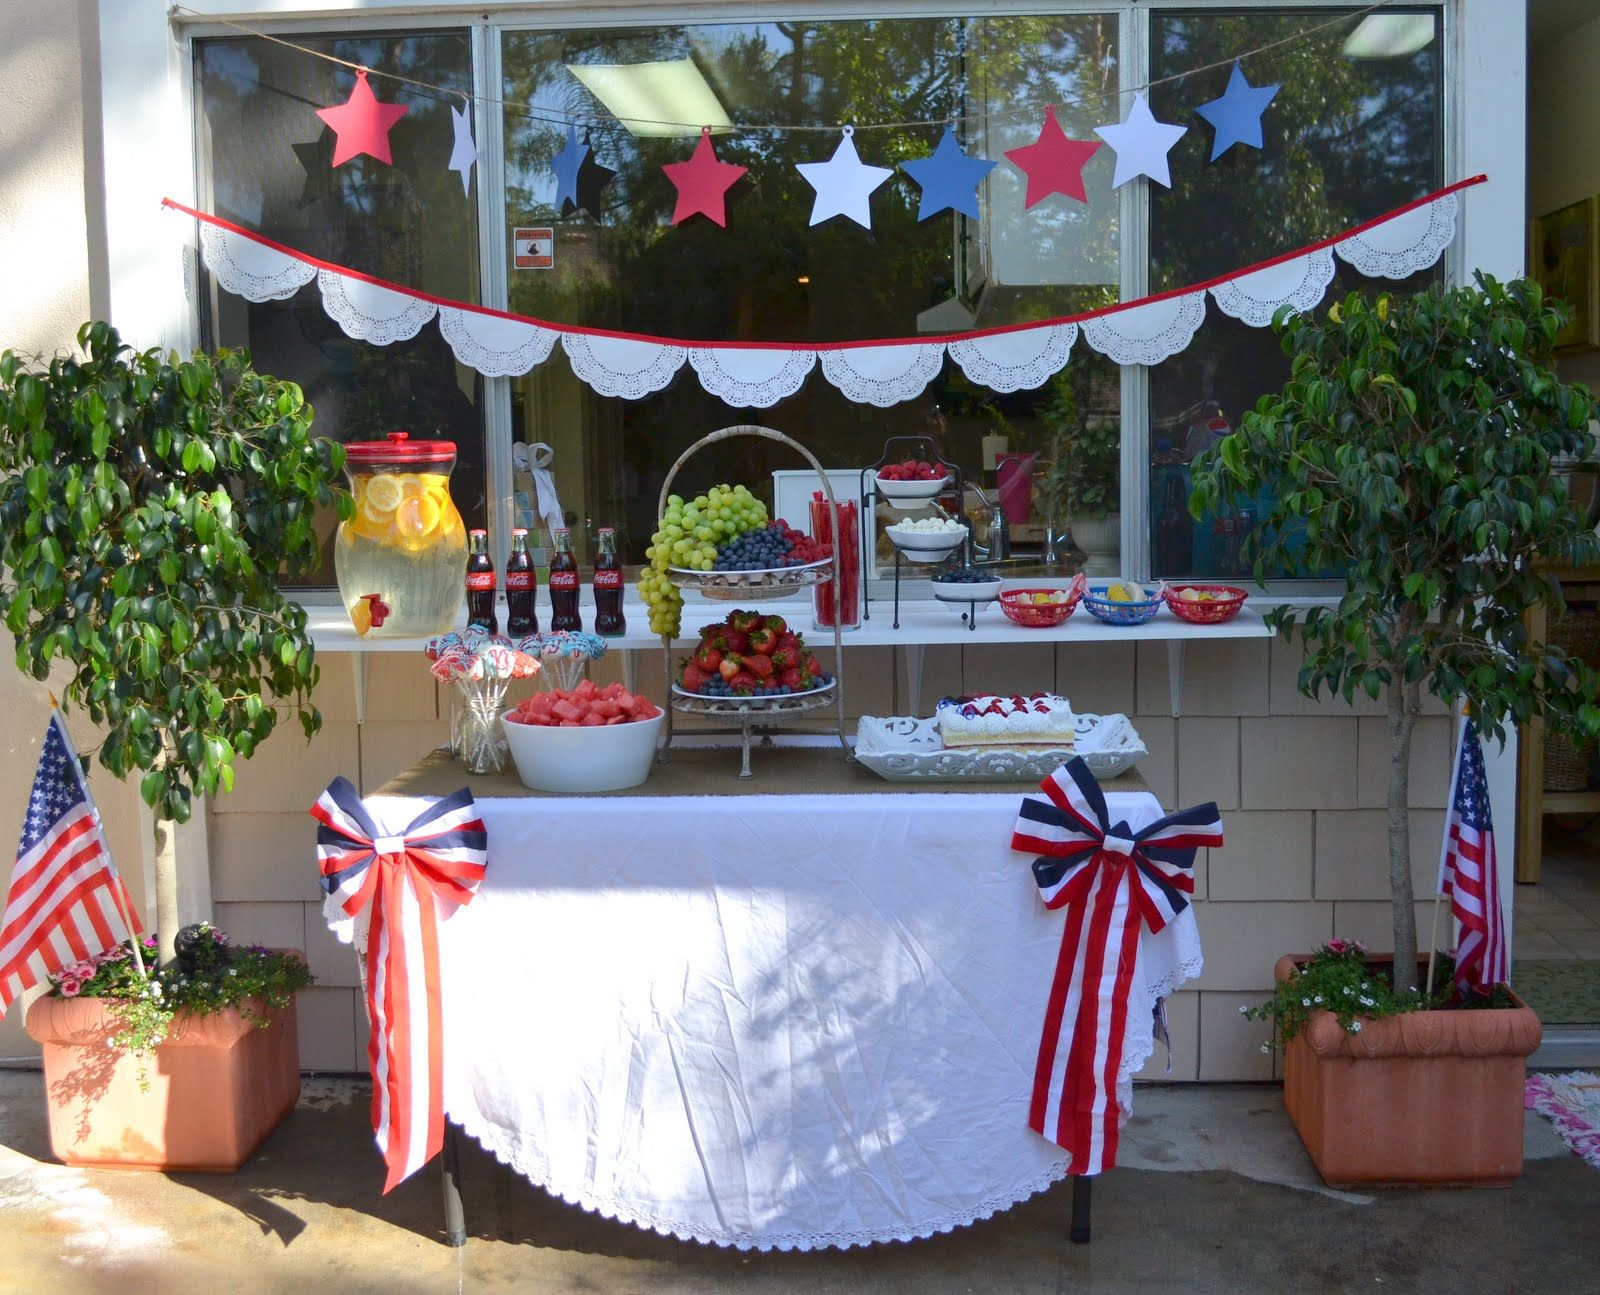 backyard party ideas for adults we had a small family get